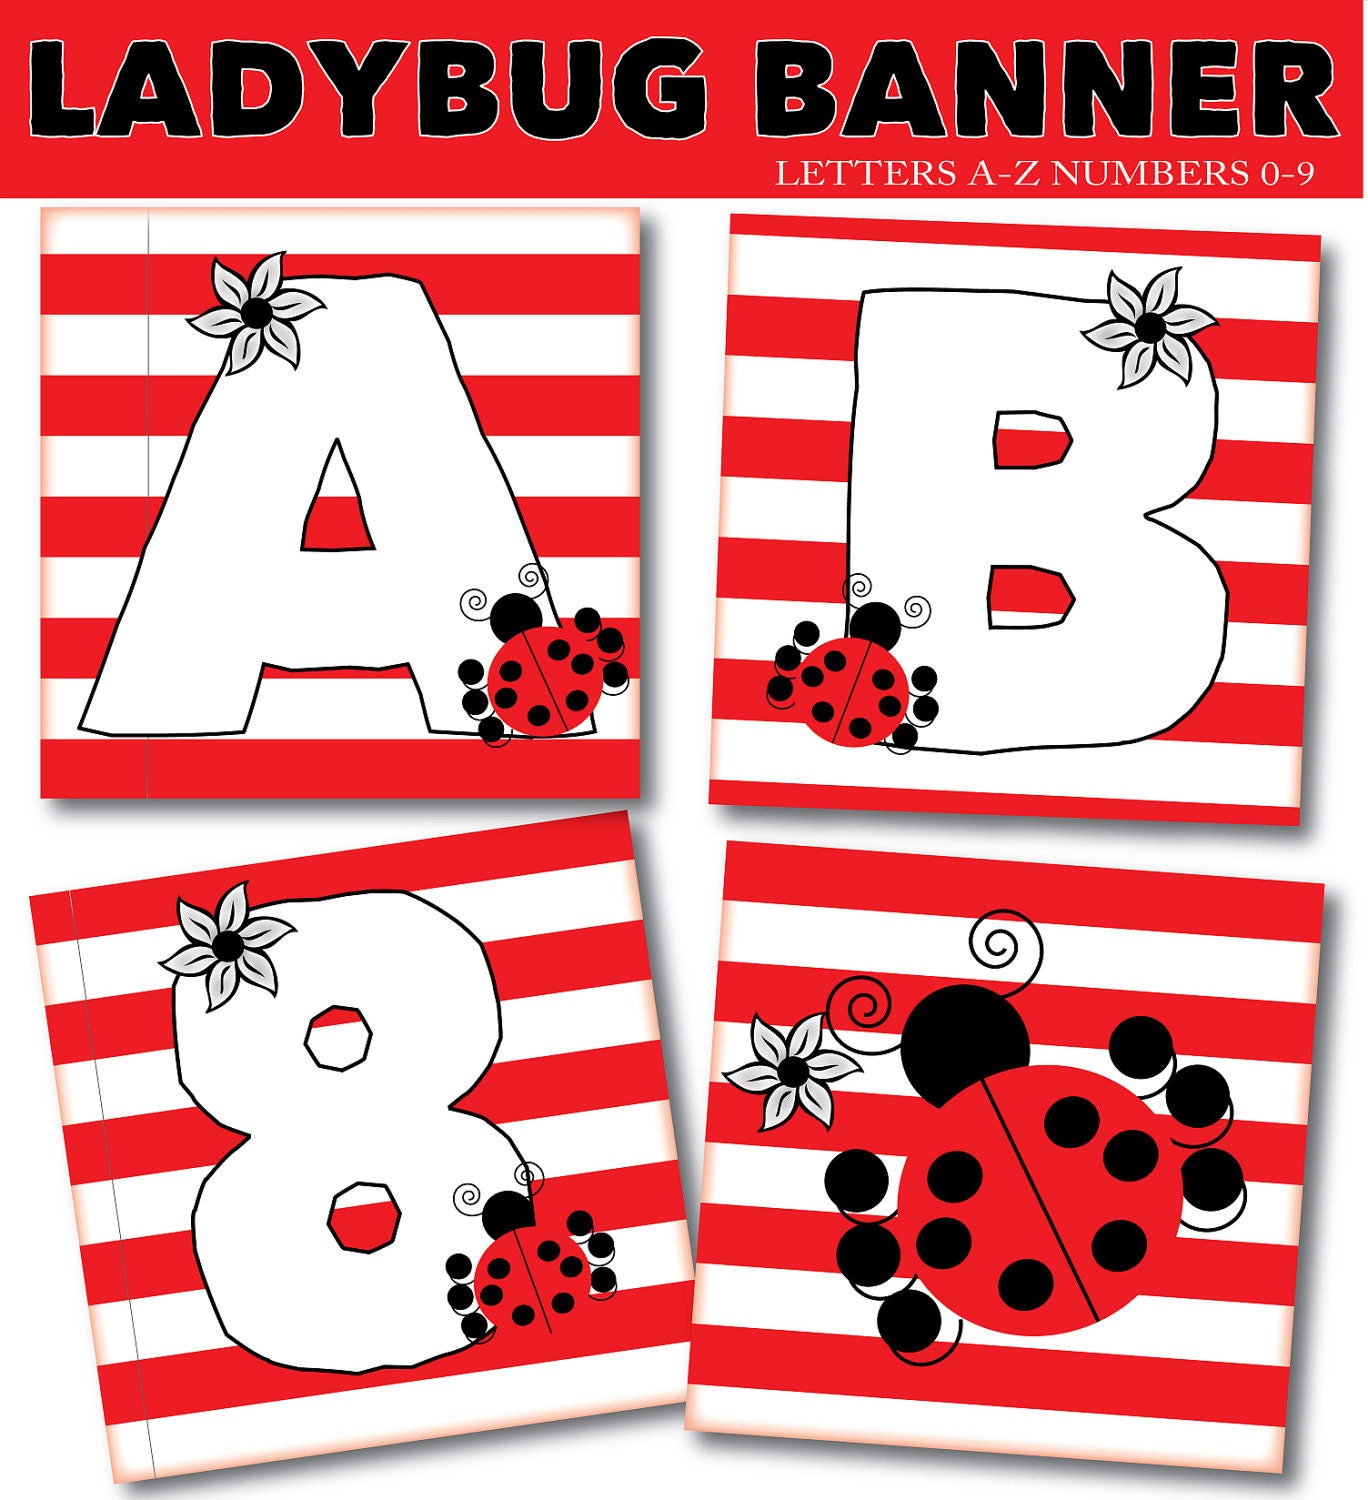 Items Similar To Ladybug Birthday Banner Letters A-Z